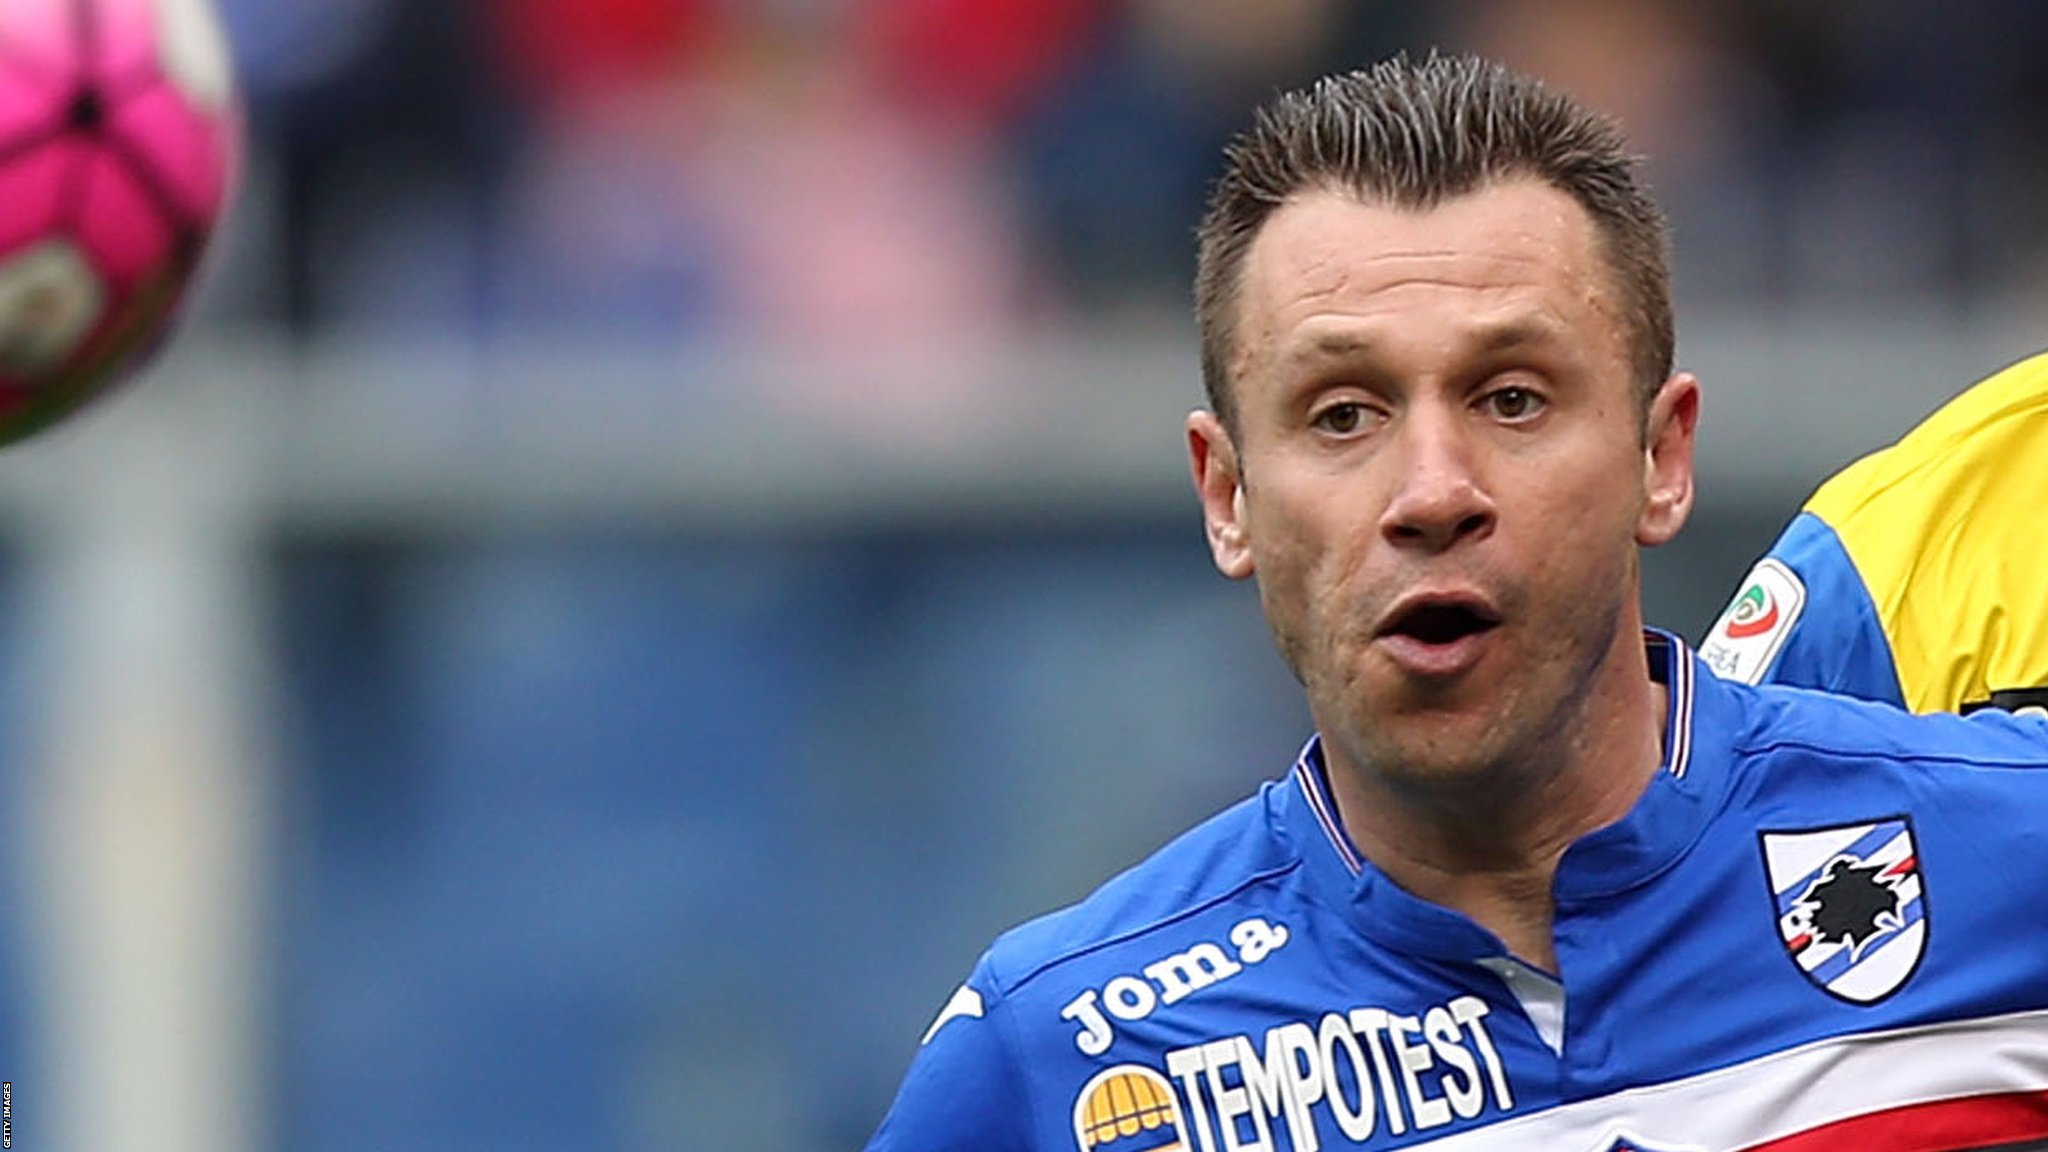 'I don't even remember the name of the team' - Cassano knocks back 'stupid' China move